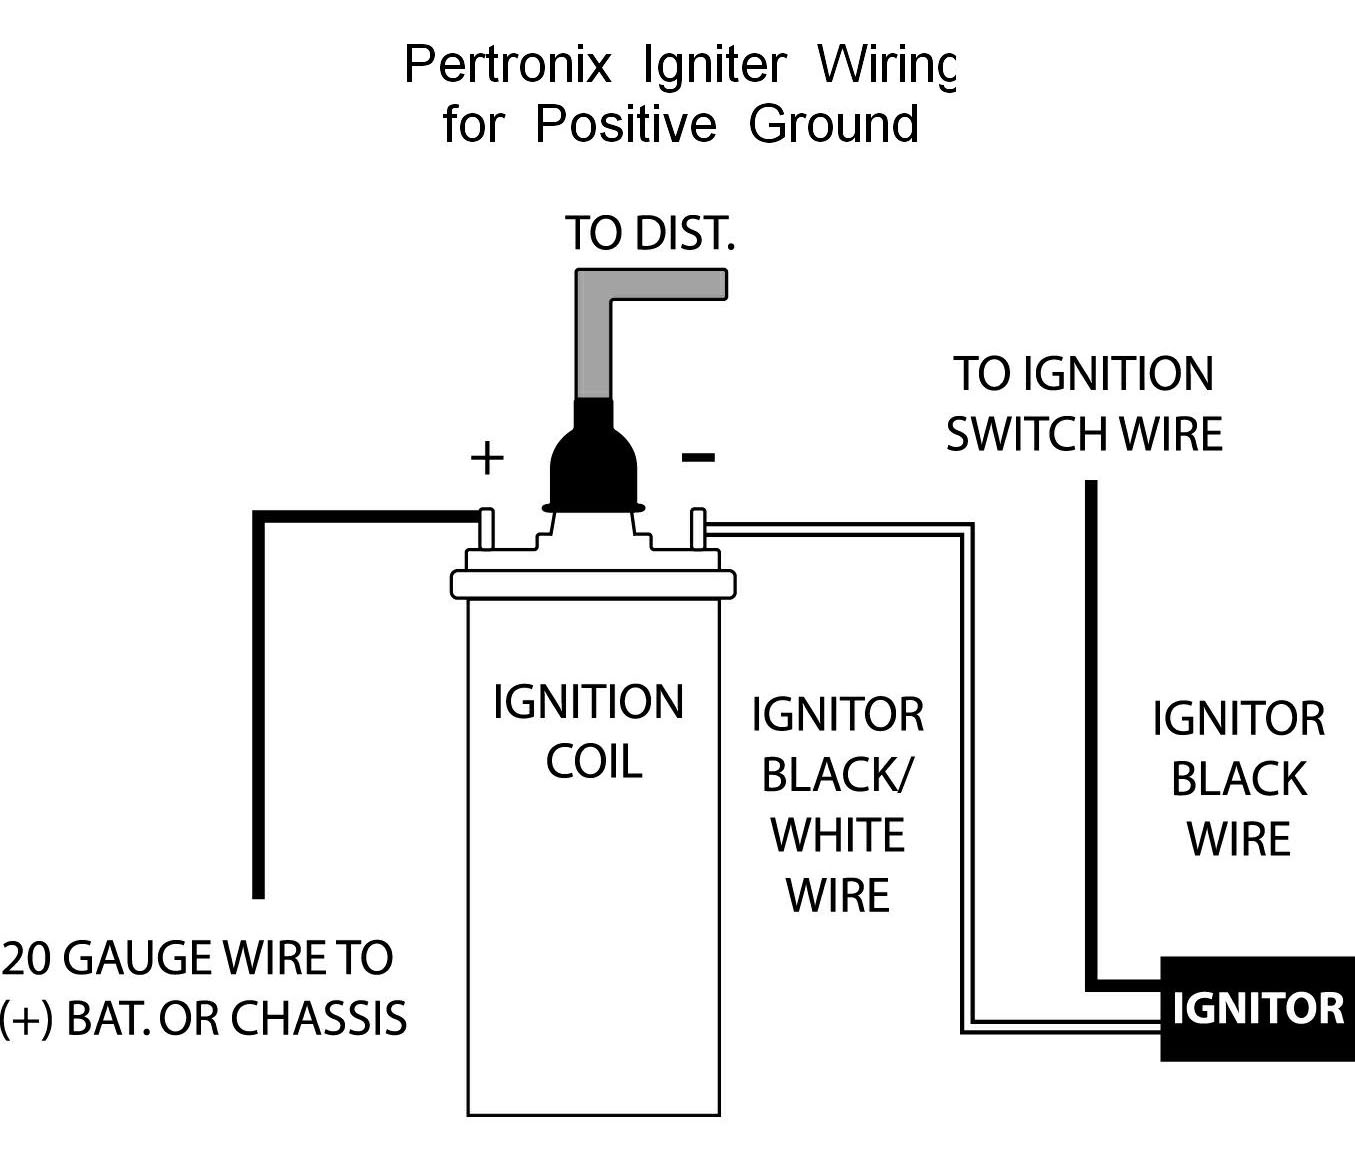 hight resolution of pertronix positive ground wiring wiring a coil ballast wiring a coil source wiring diagram ignition